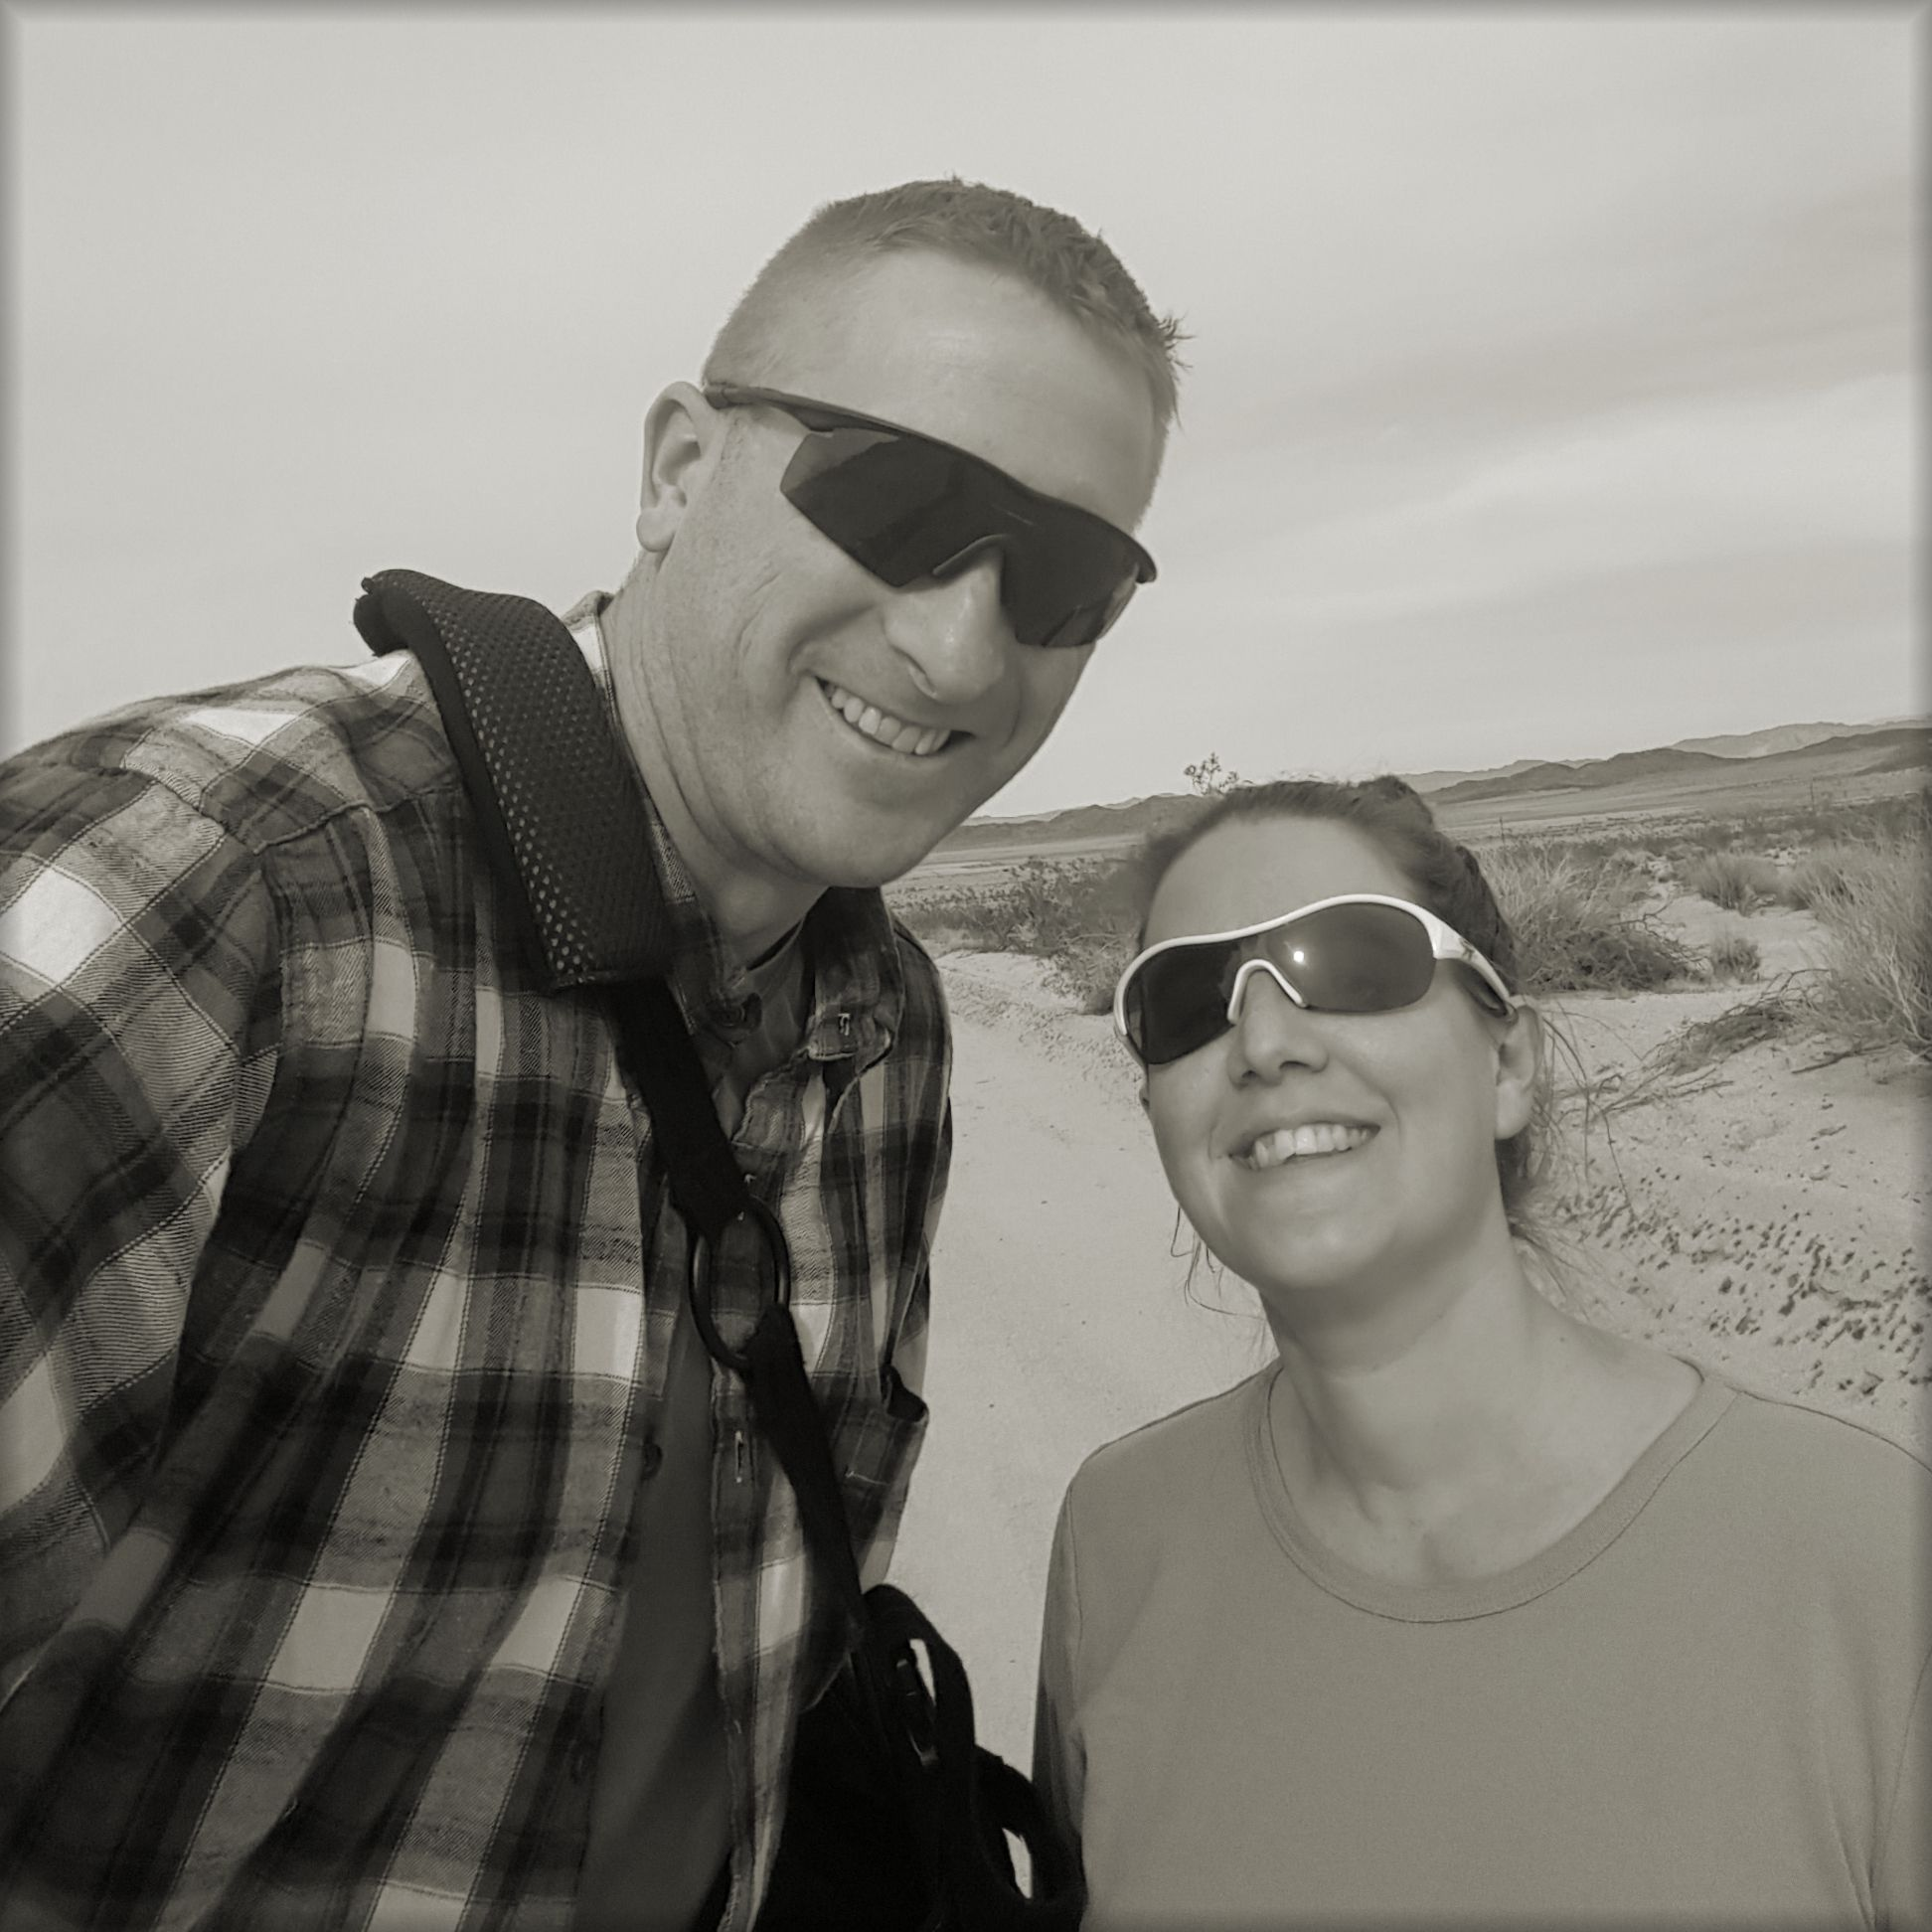 Our daily walk as a couple for rehab.